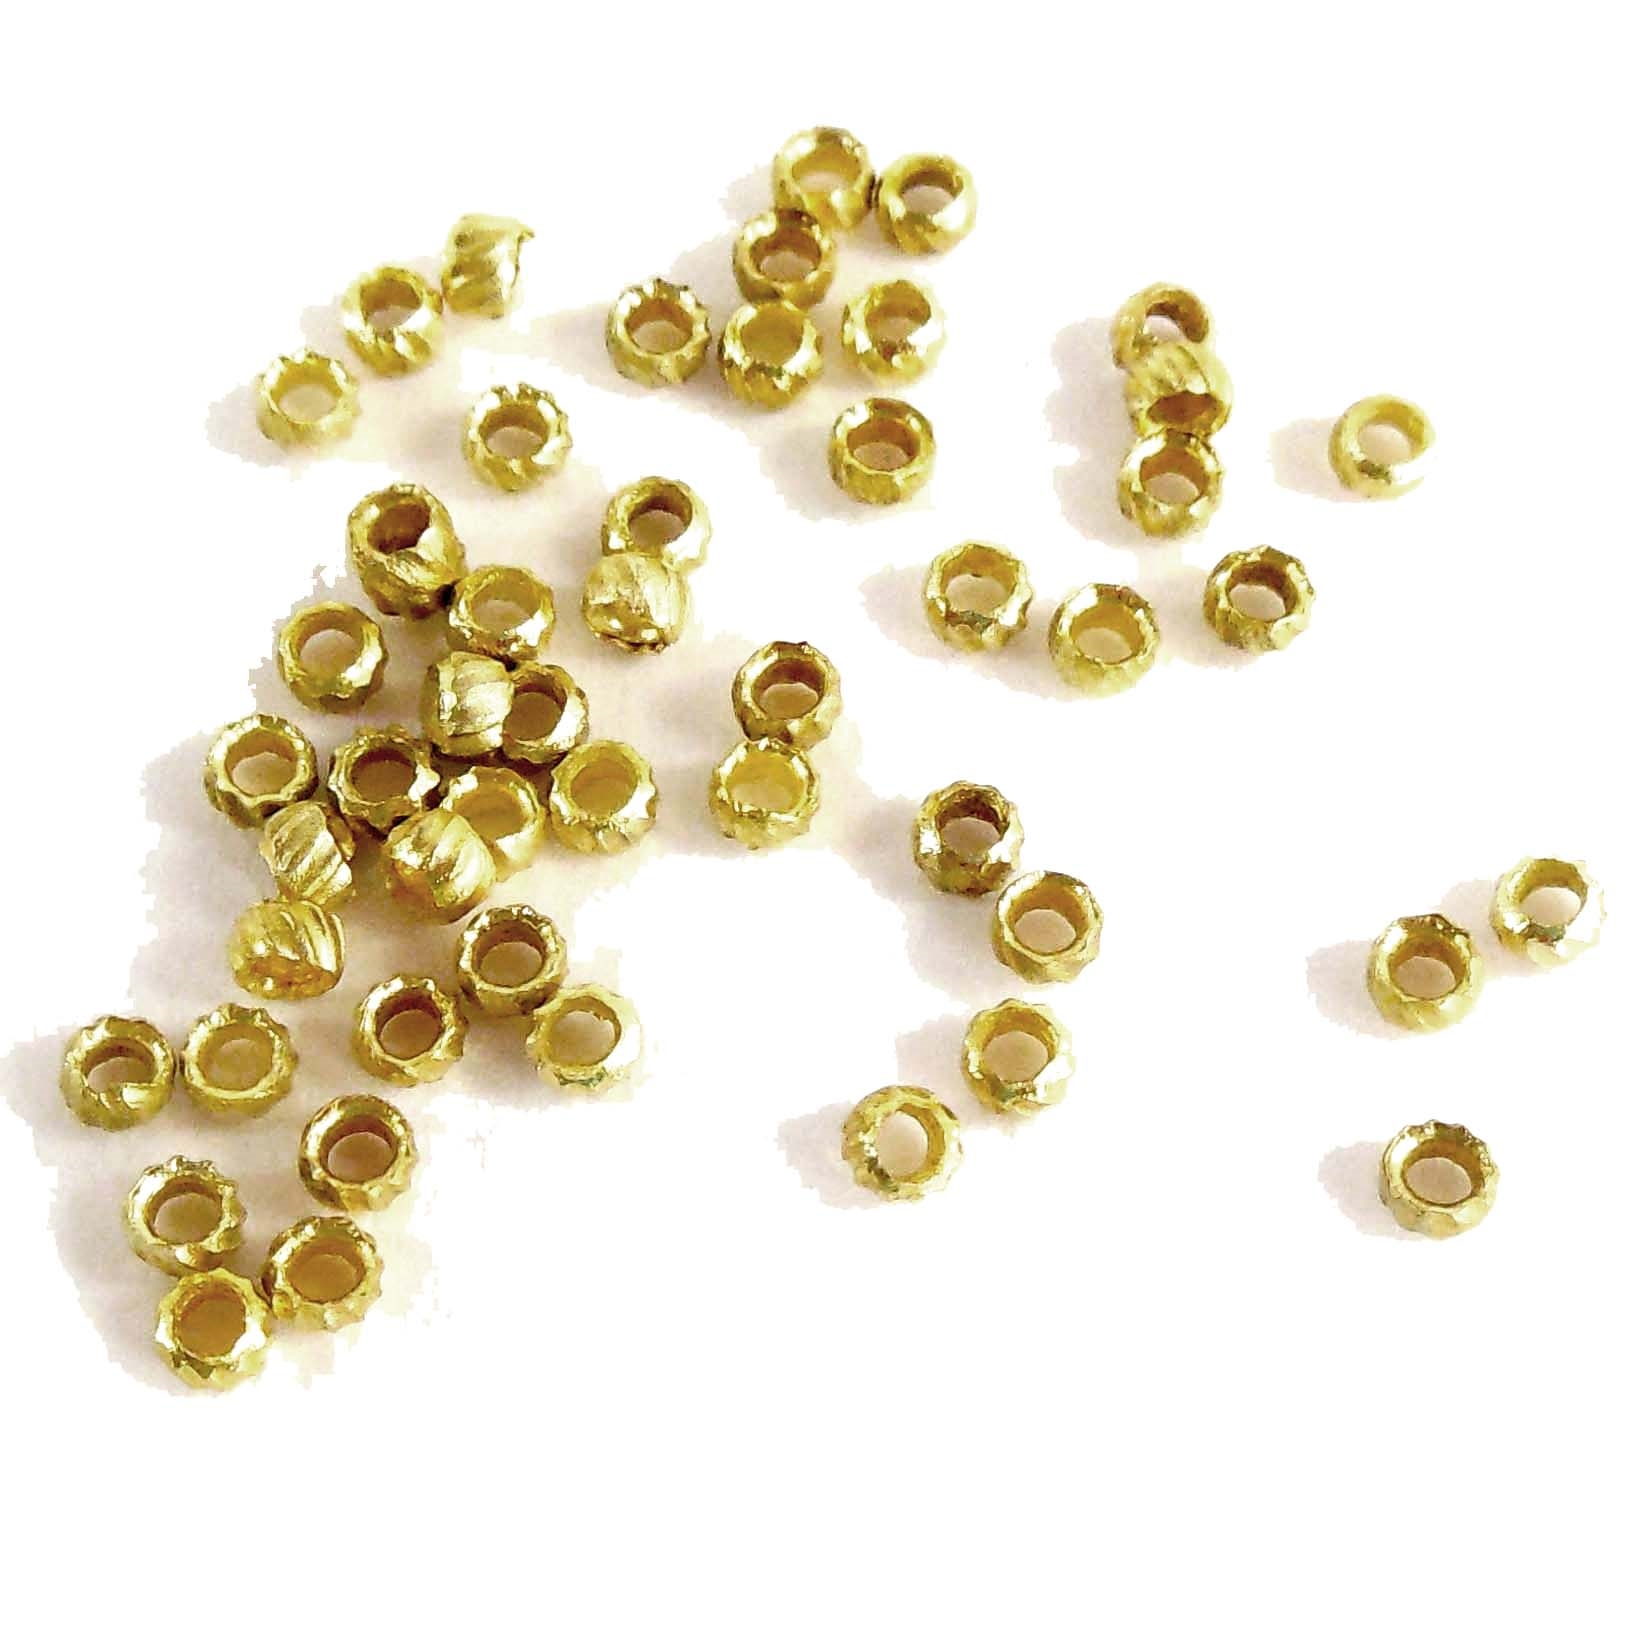 crimp beads, beading supplies, gold plate, 07682, B'sue Boutiques, nickel free jewelry, US made jewelry, bead finding, jewelry finding, vintage jewellery supplies, jewelry making supplies, antique gold crimp beads